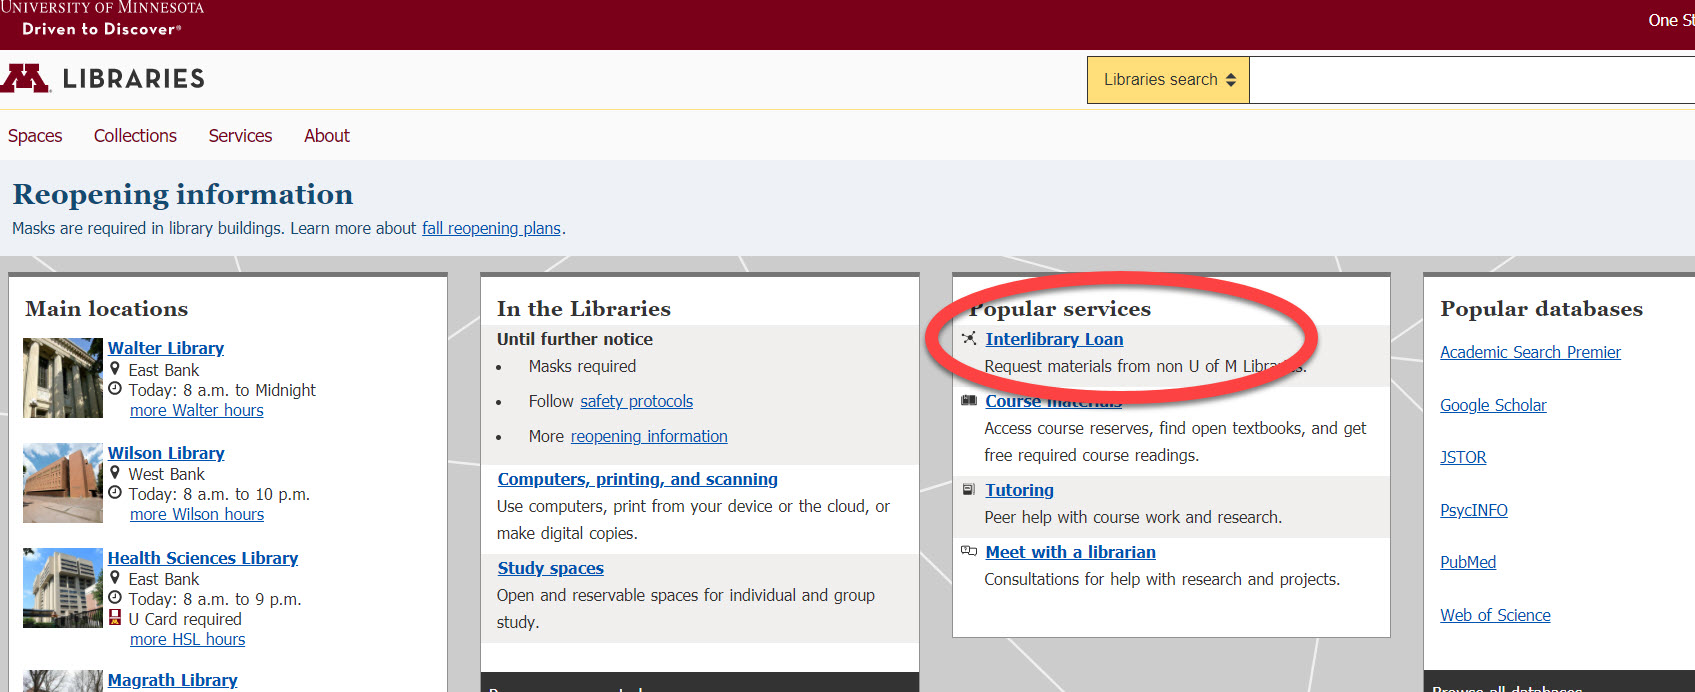 An image of the University Libraries website with a red circle around the link for the Interlibrary Loan link.